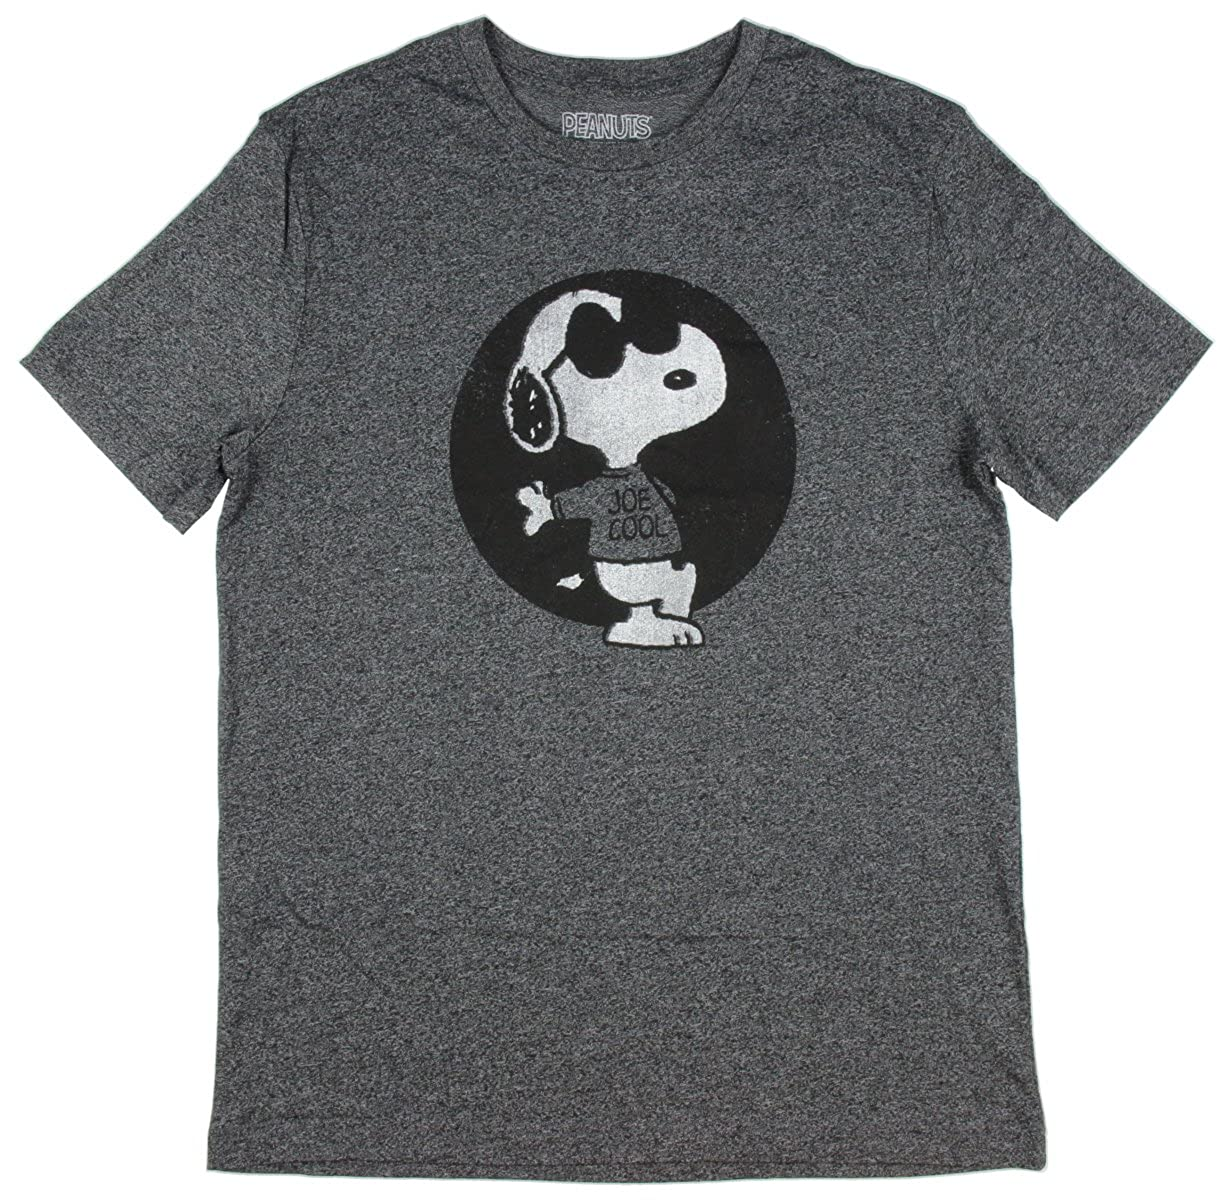 Peanuts Snoopy Joe Cool Licensed Graphic T-Shirt B00ZGXKC22